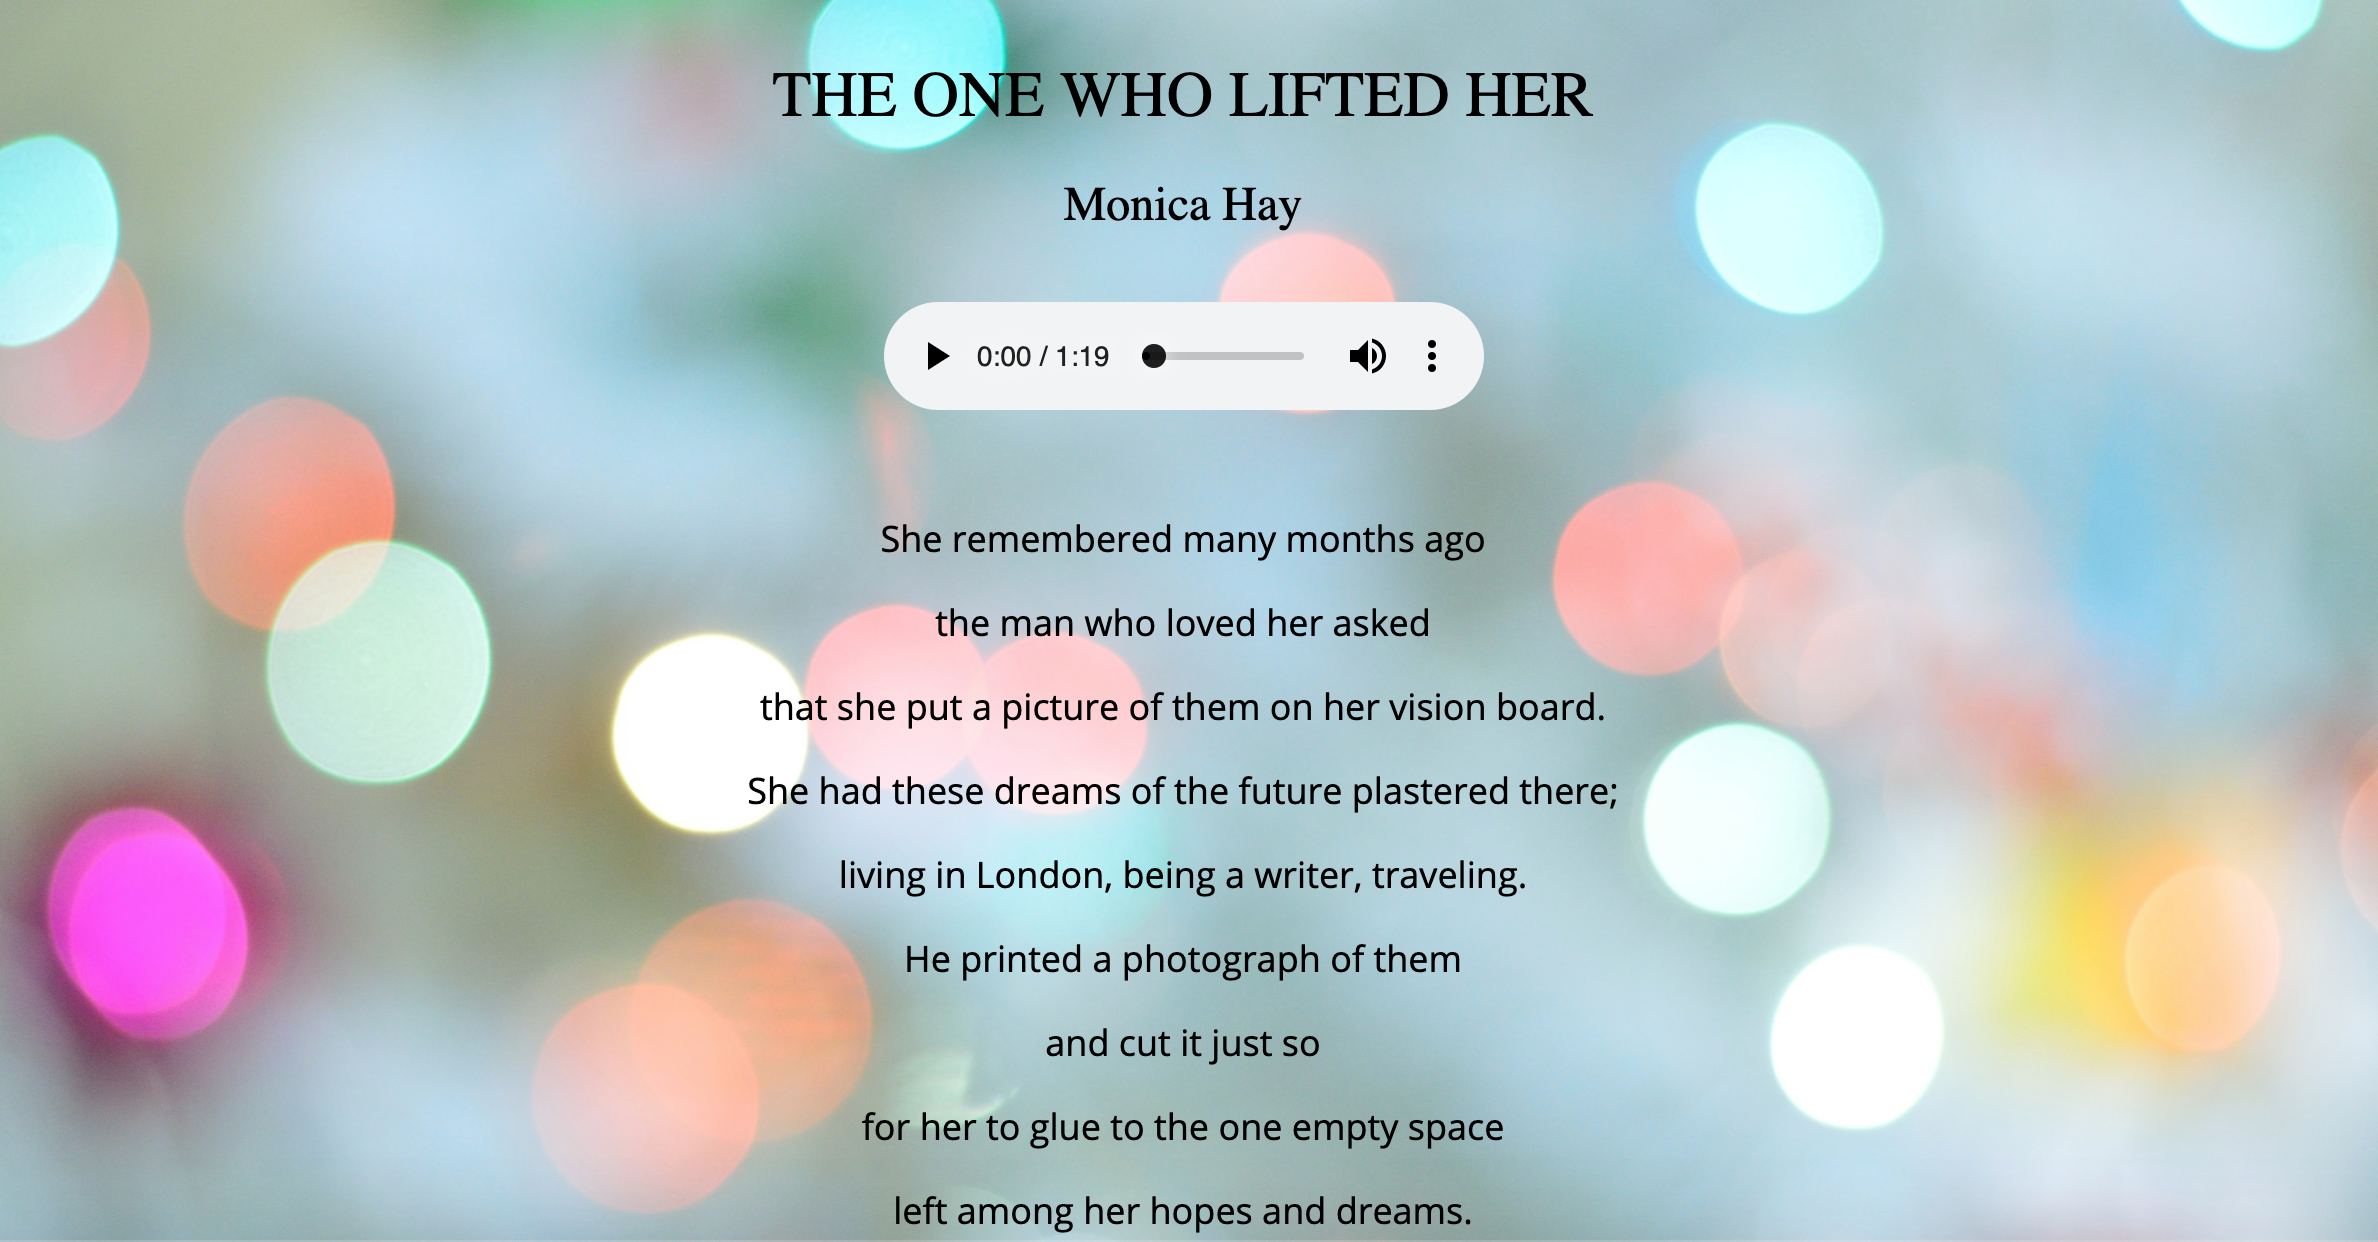 Poem by Monica Hay